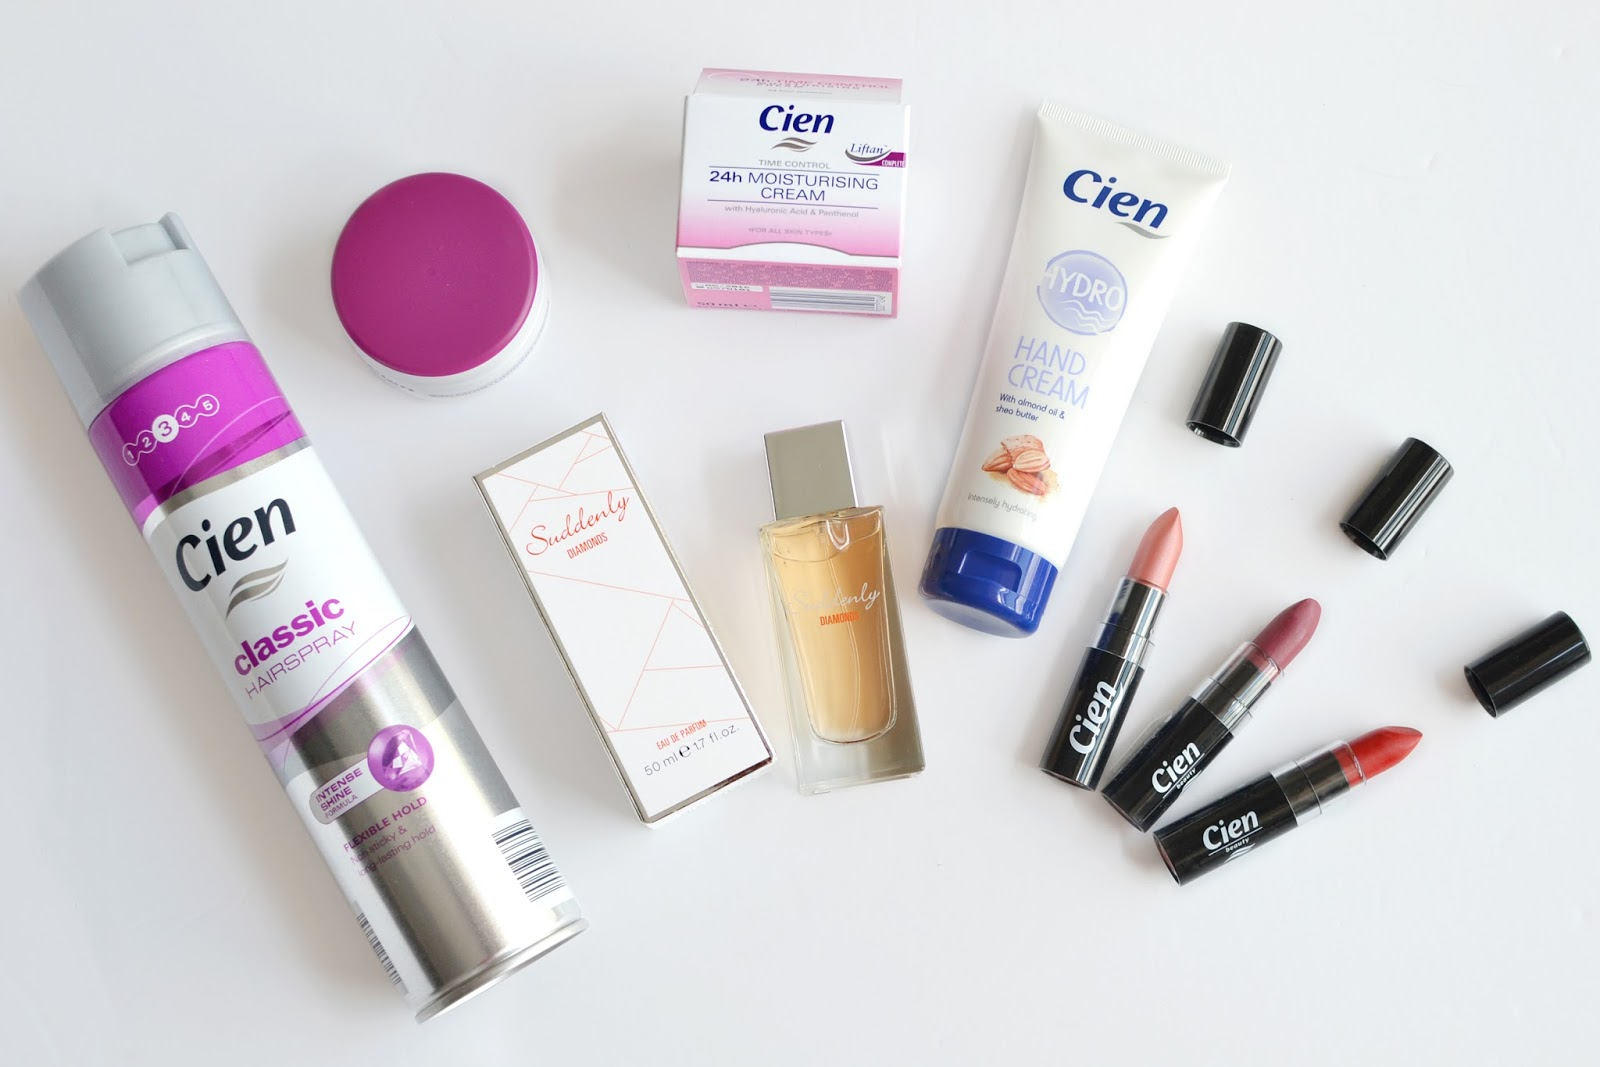 lidl beauty products, budget beauty products